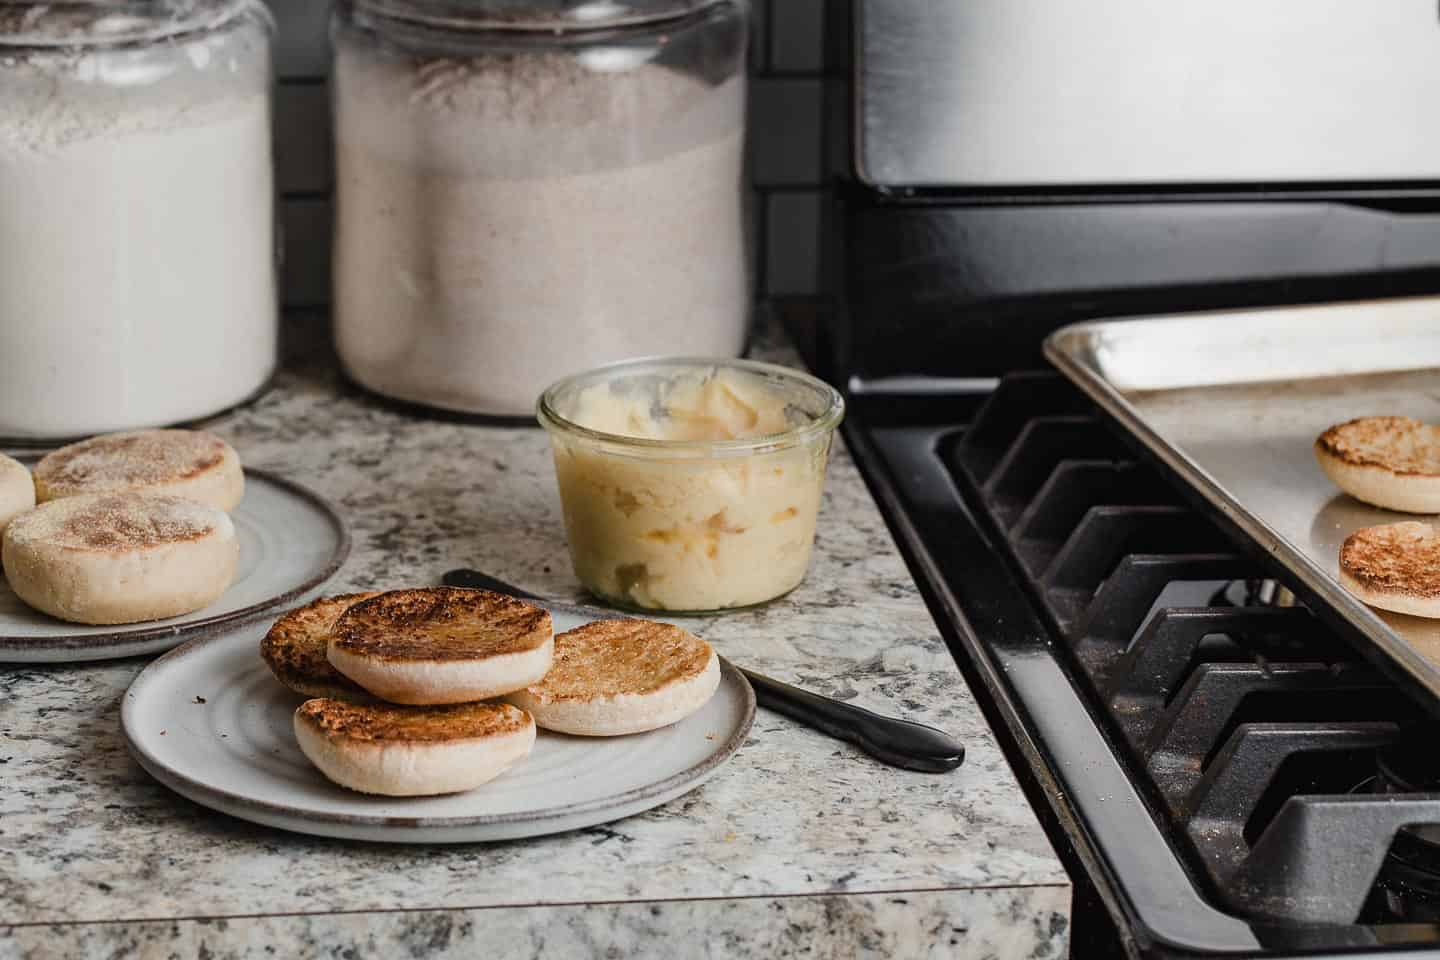 A plate of english muffins on a kitchen counter with butter next to a stove.